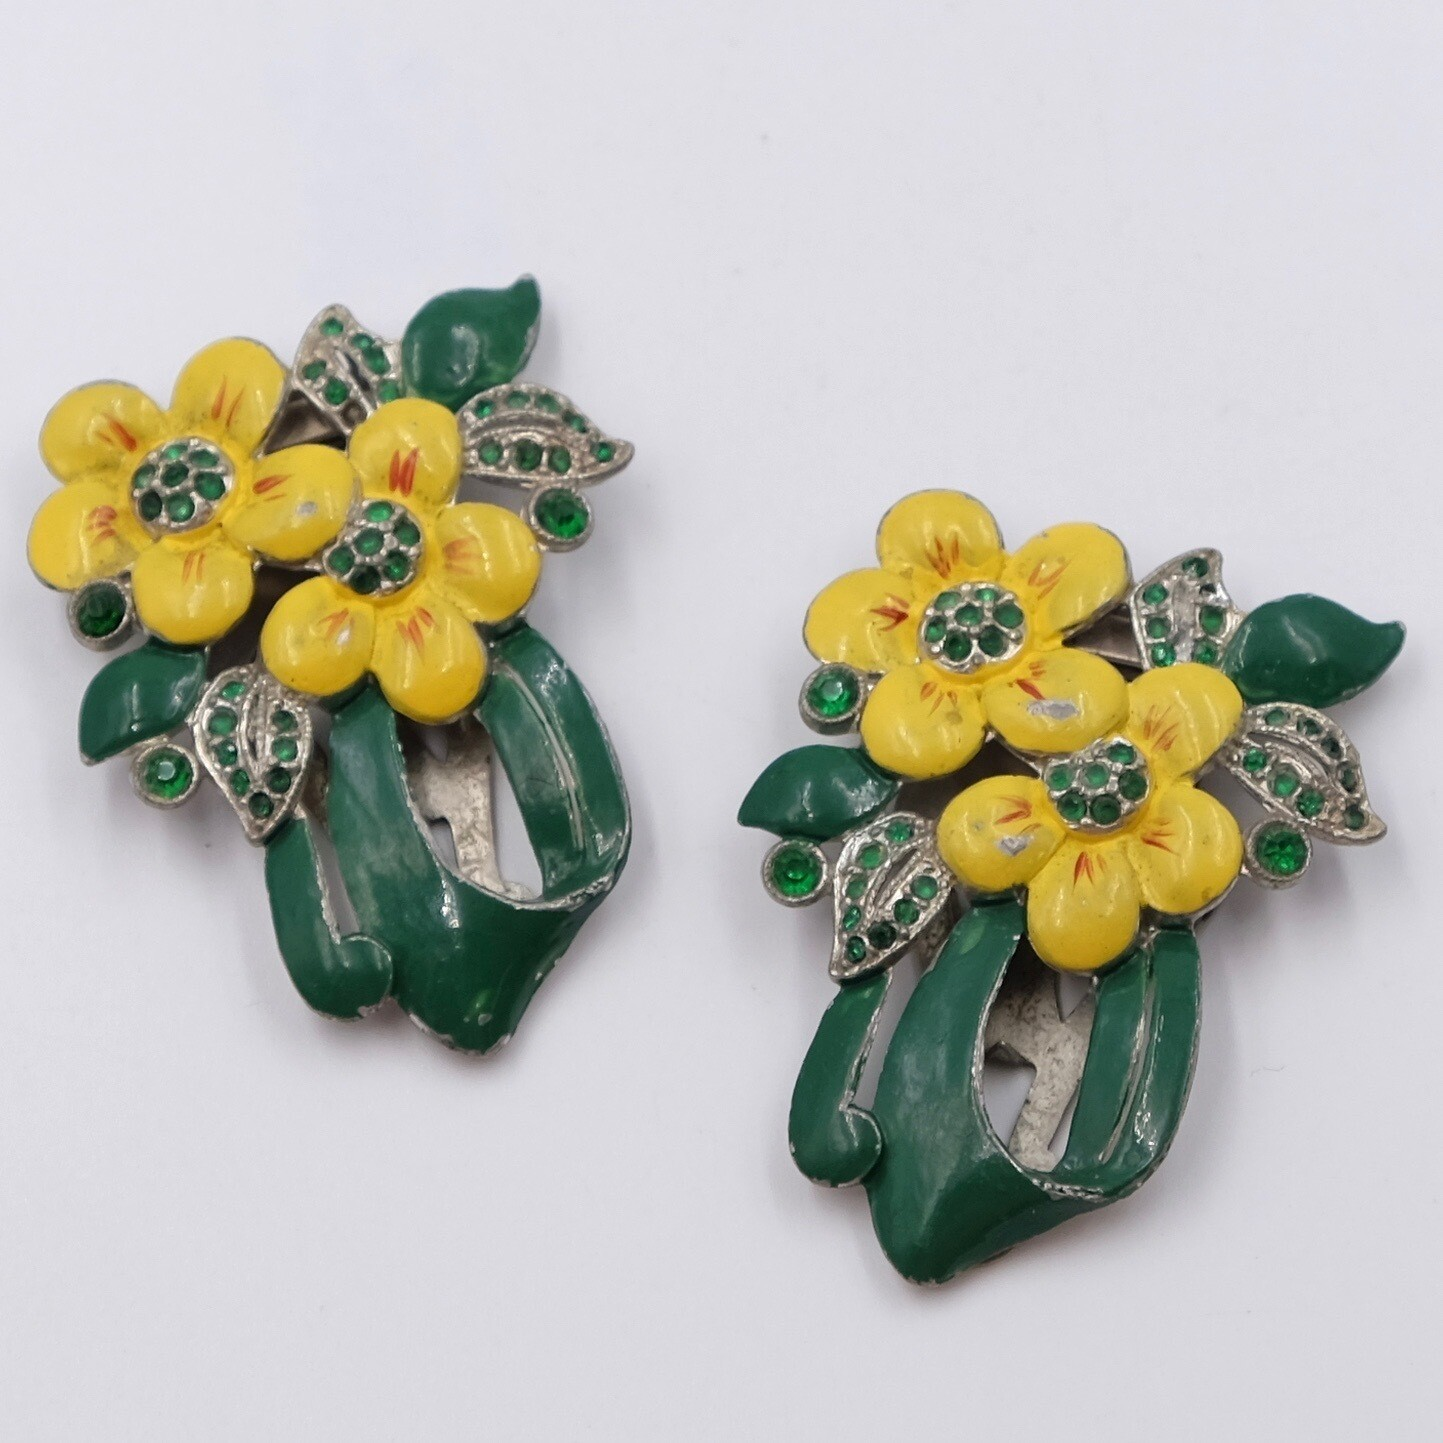 Antique Enamel Double Dress Clips